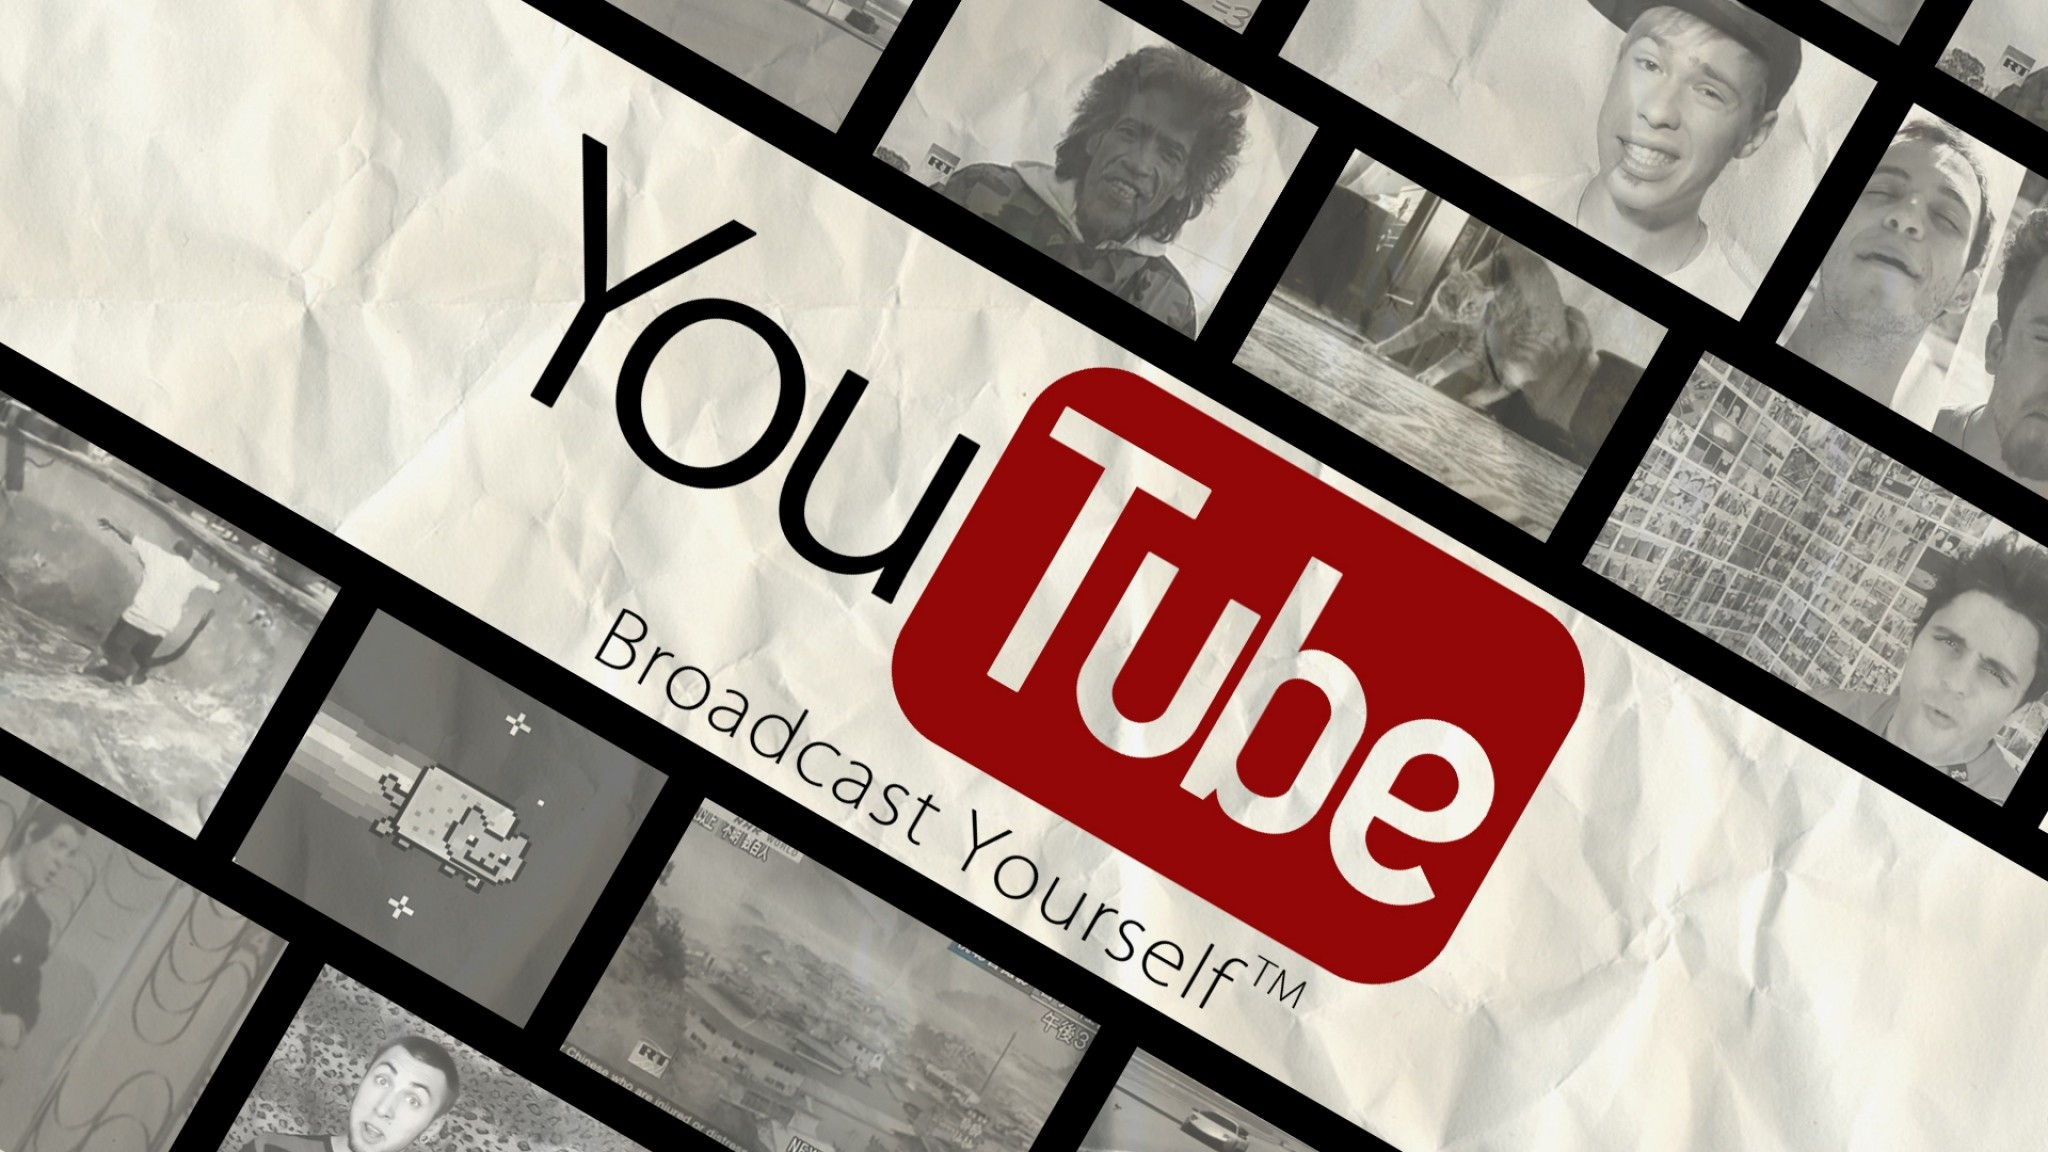 Youtube Wallpaper 2048x1152 89 Images